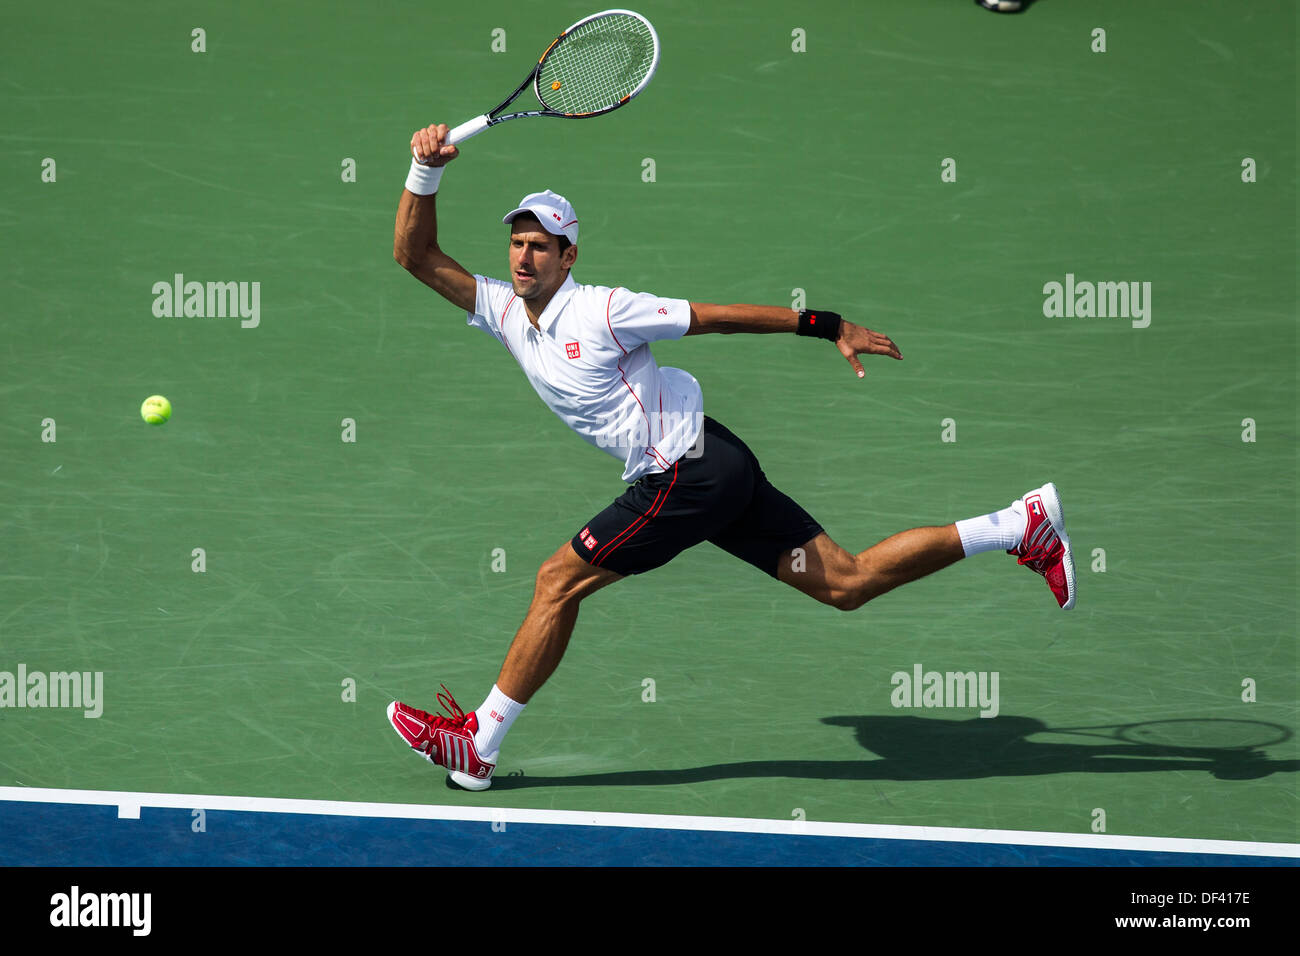 Novak Djokovic (SRB) competing in the Semifinals at the 2013 US Open Tennis Championships - Stock Image